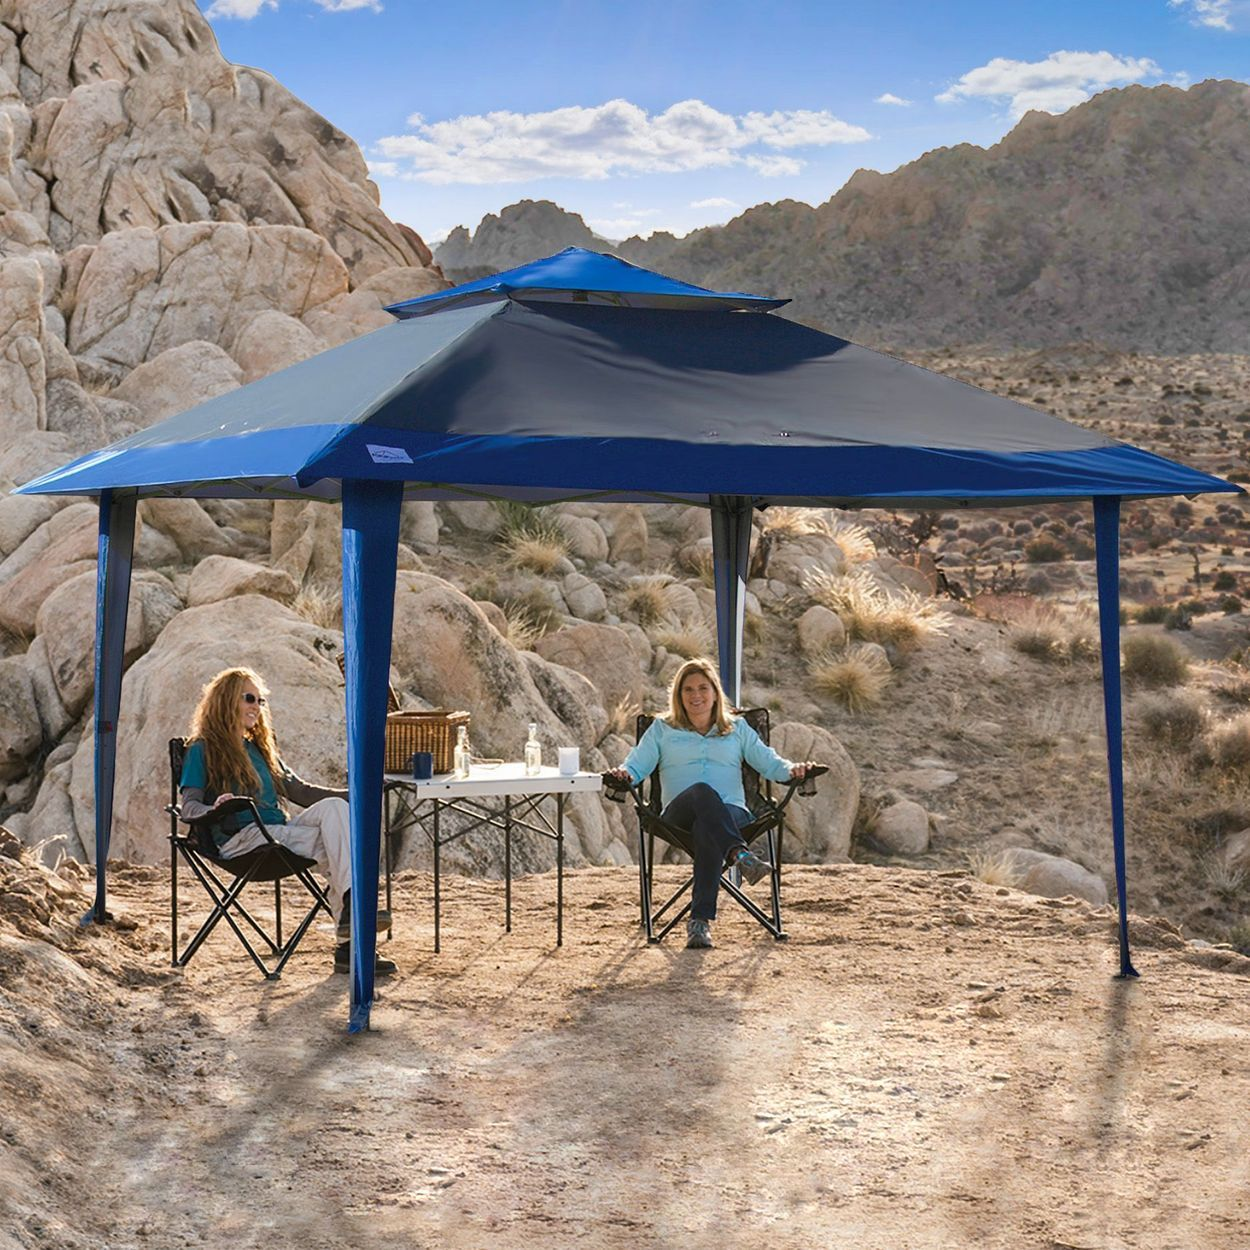 Popupshade 13 X13 Instant Canopy With Poplock Central Hub Frame In 2021 Instant Canopy Canopy Outdoor Comfort